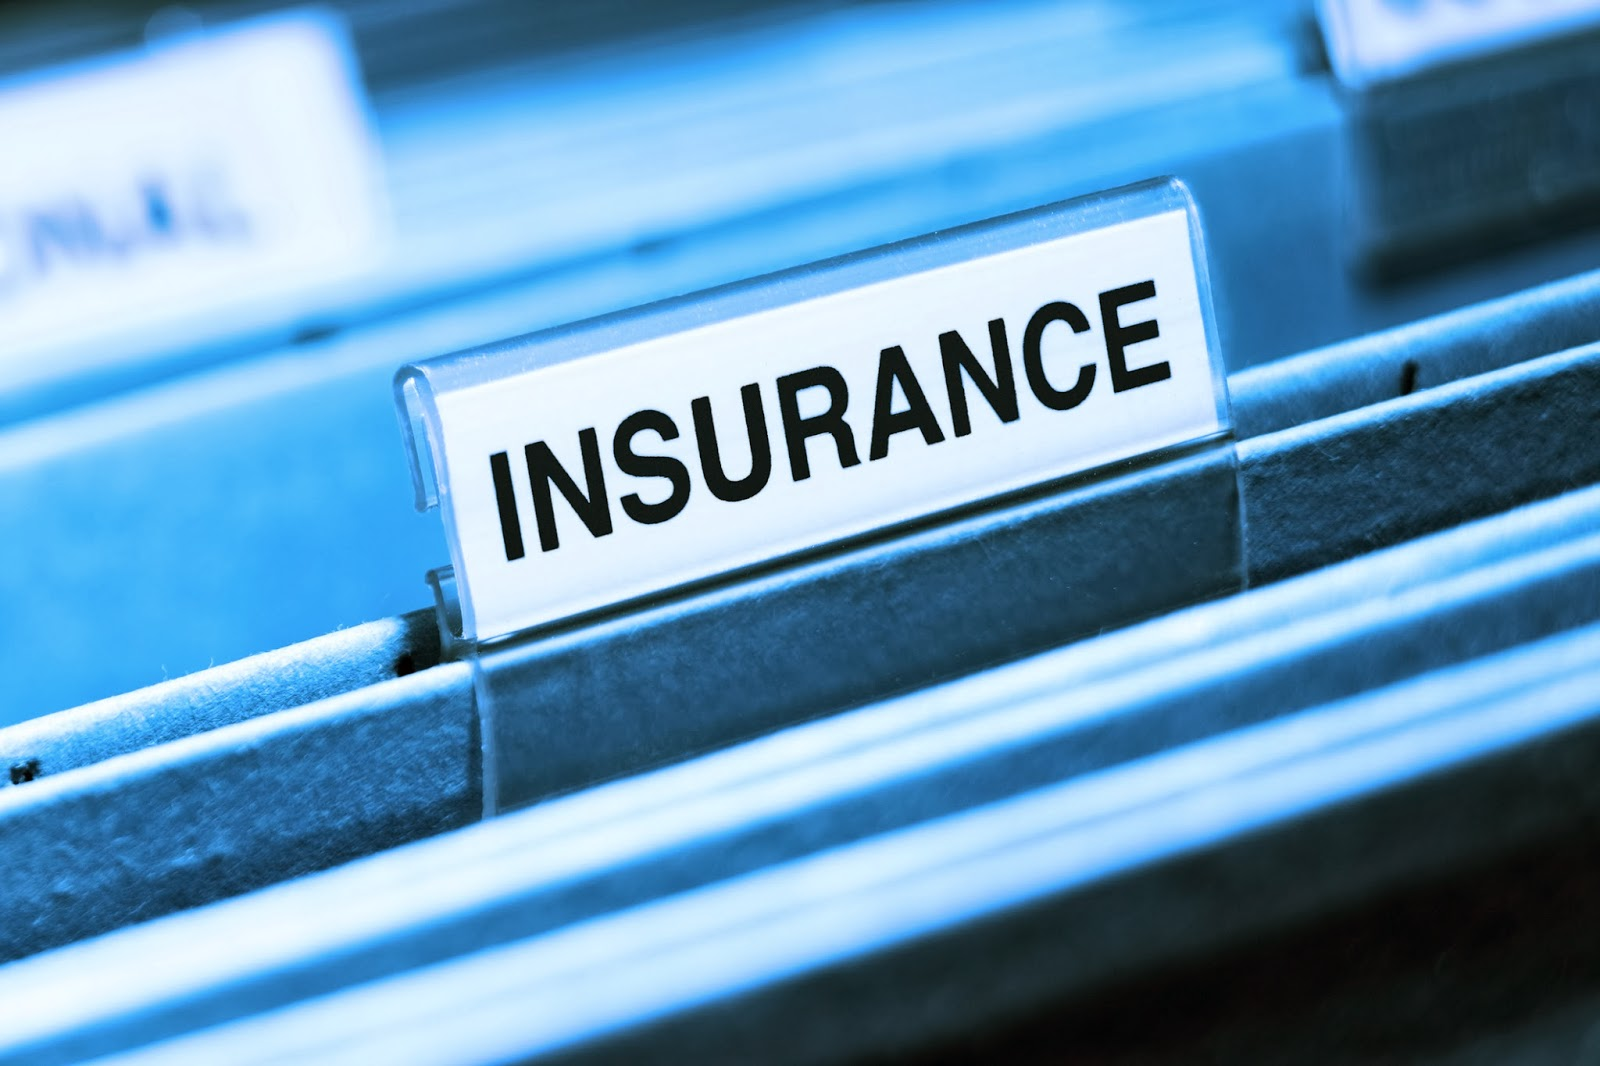 Product Liability Insurance What Does It Cover